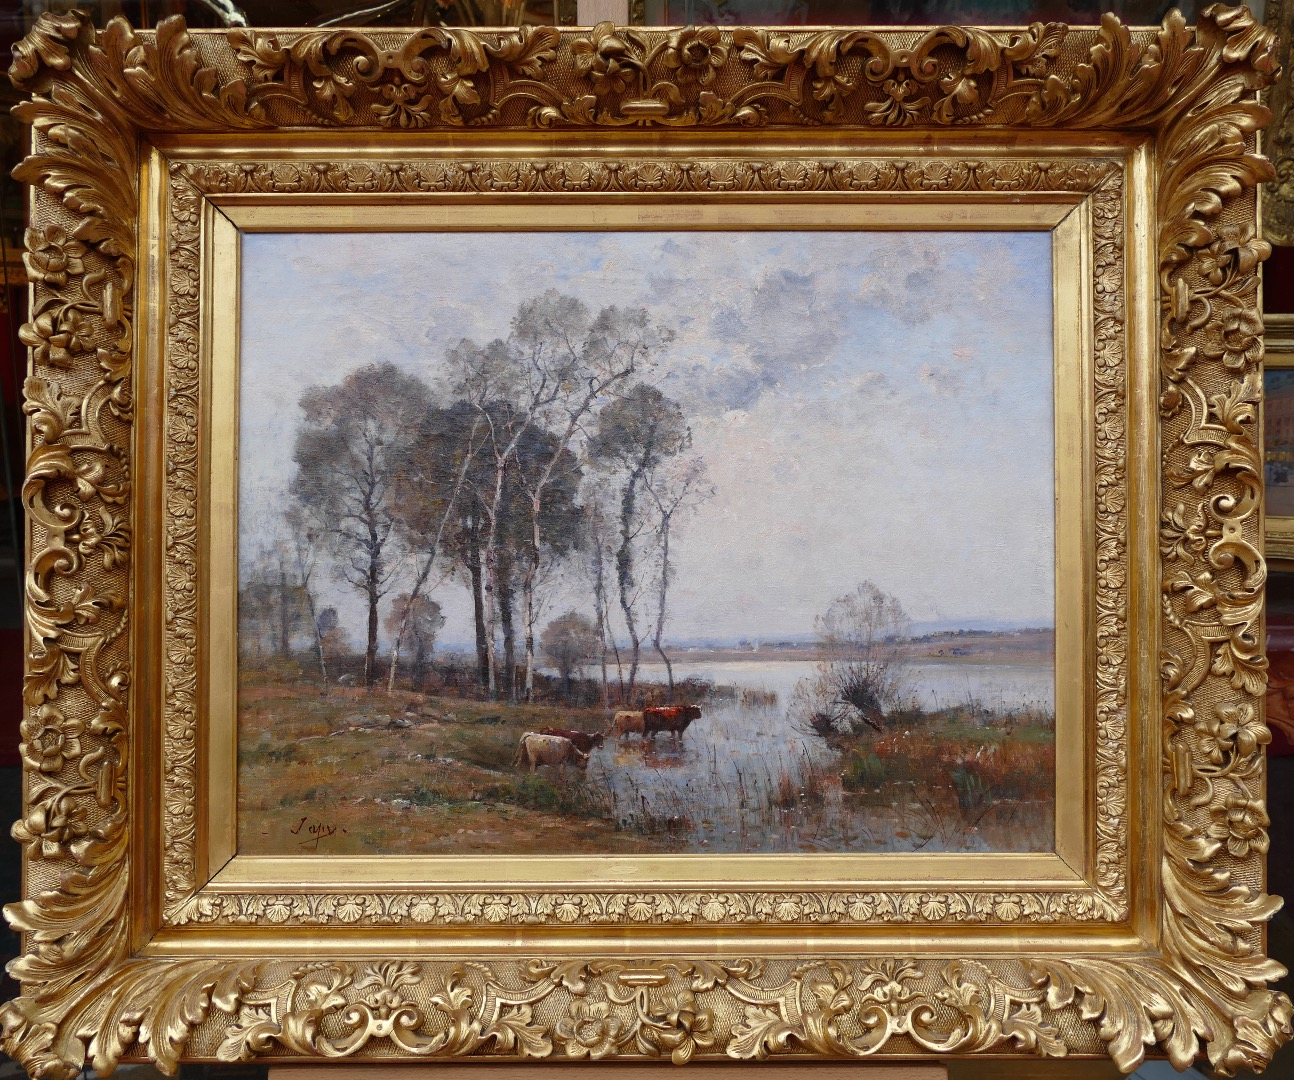 JAPY Louis Aimé French School Painting 19Th Century Barbizon school Oil On Canvas Signed